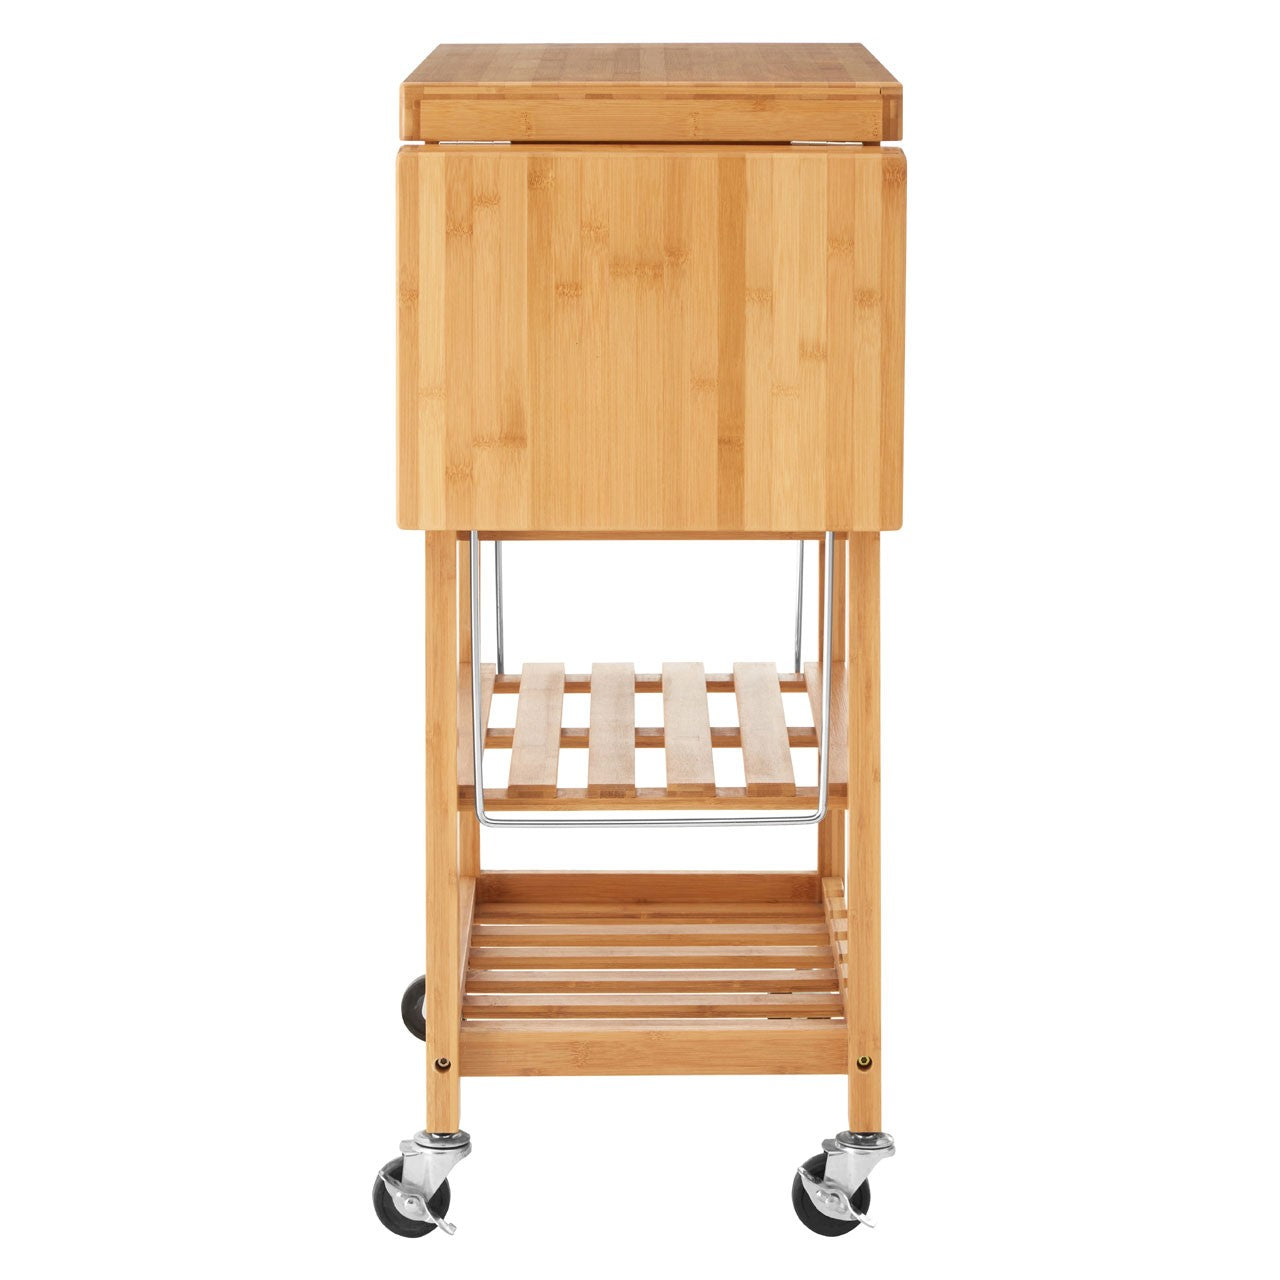 Kitchen Trolley in Natural Bamboo